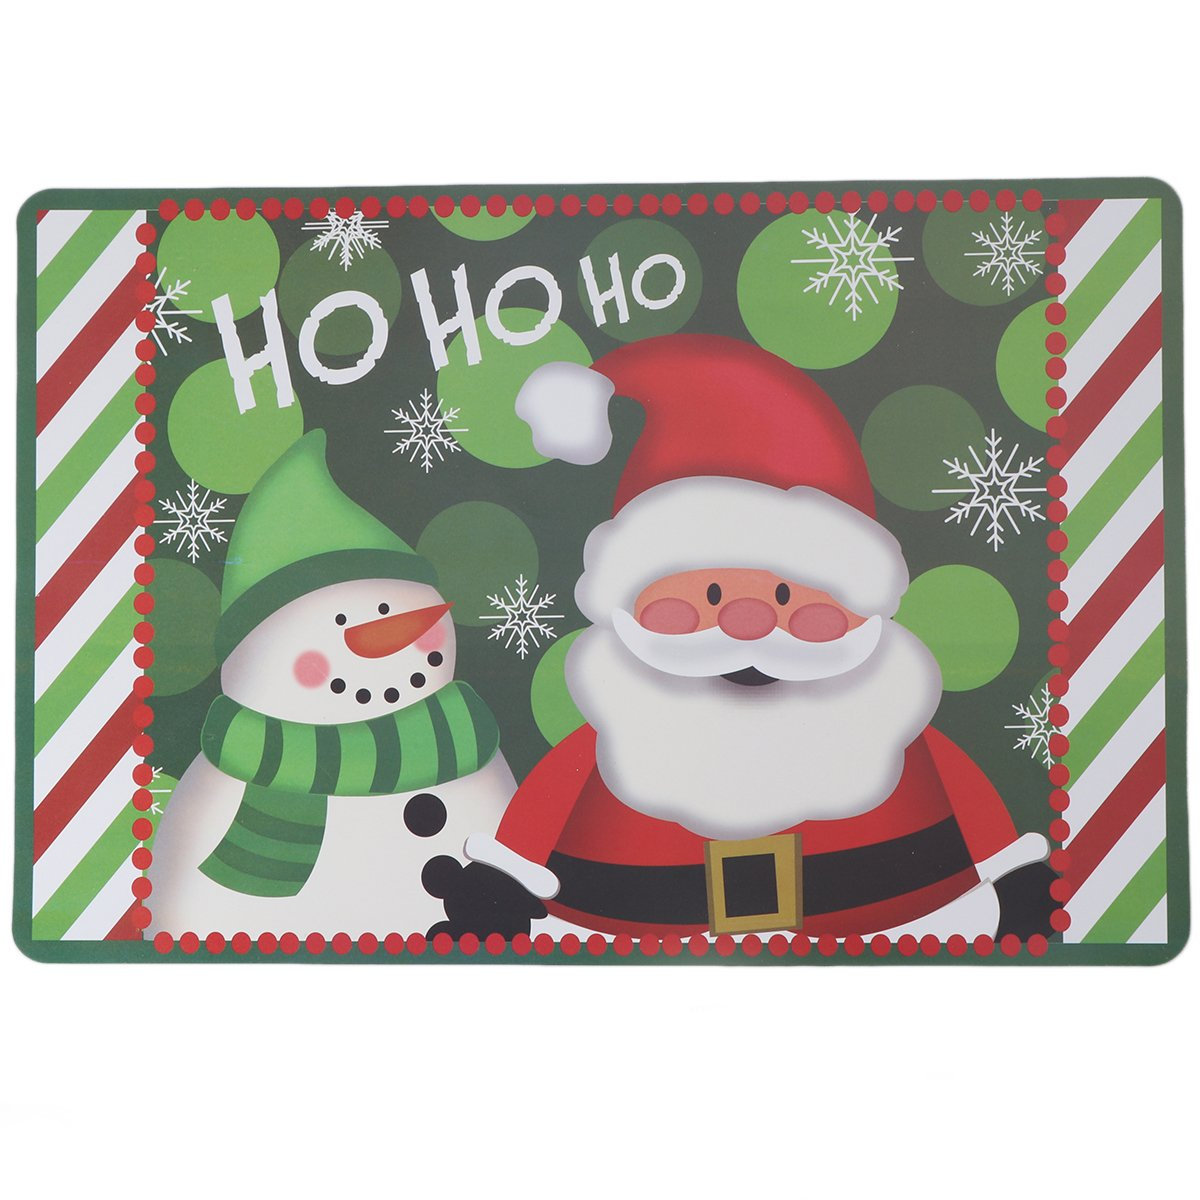 BESTOYARD 6 Pairs Christmas Coasters Placemats Waterproof PVC Snowman Santa Claus Placemats Table Mats Cup Mat Christmas Decoration (Green)